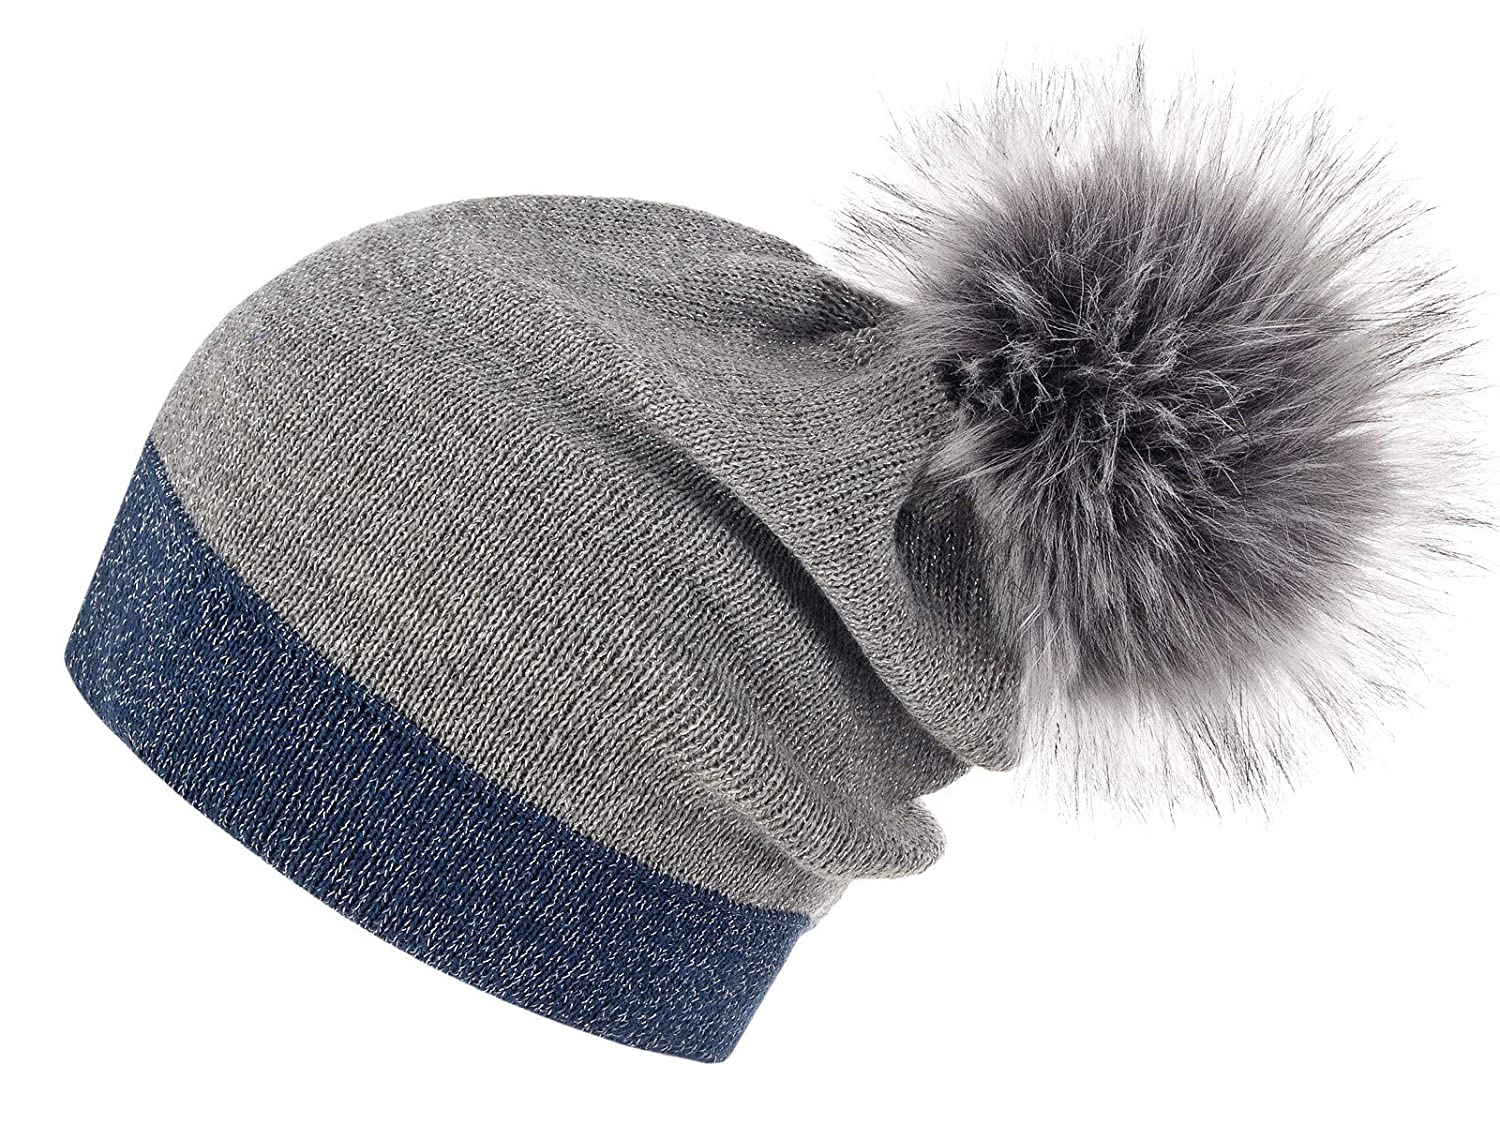 bluee Grey Silver Raccoon Dog Futrzane Women's Slouchy Beanie Hat with a Faux Fur Pom Pom